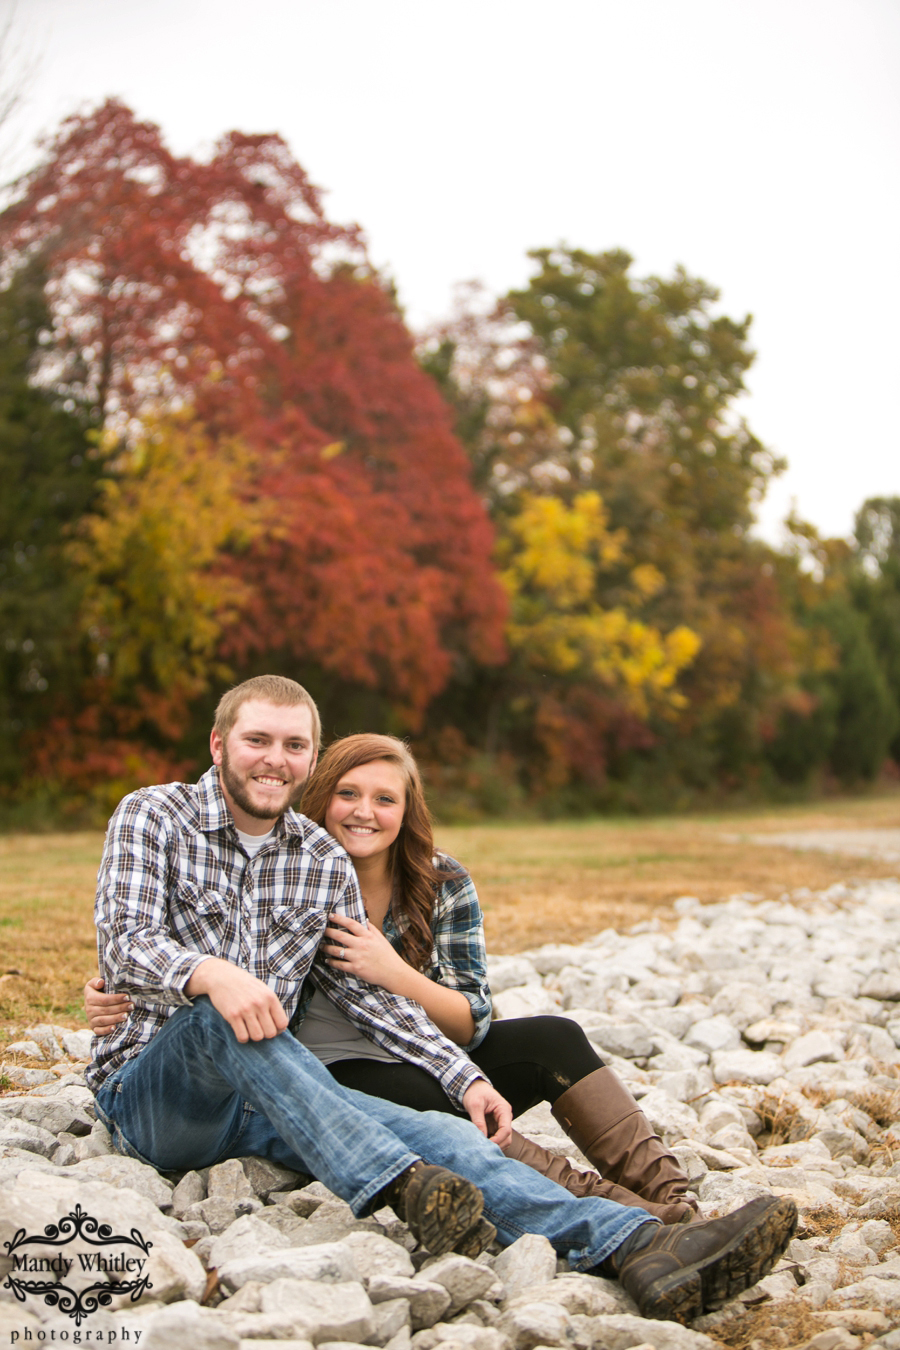 Mandy Whitley Photography | Nashville Engagement and Pet Photographer